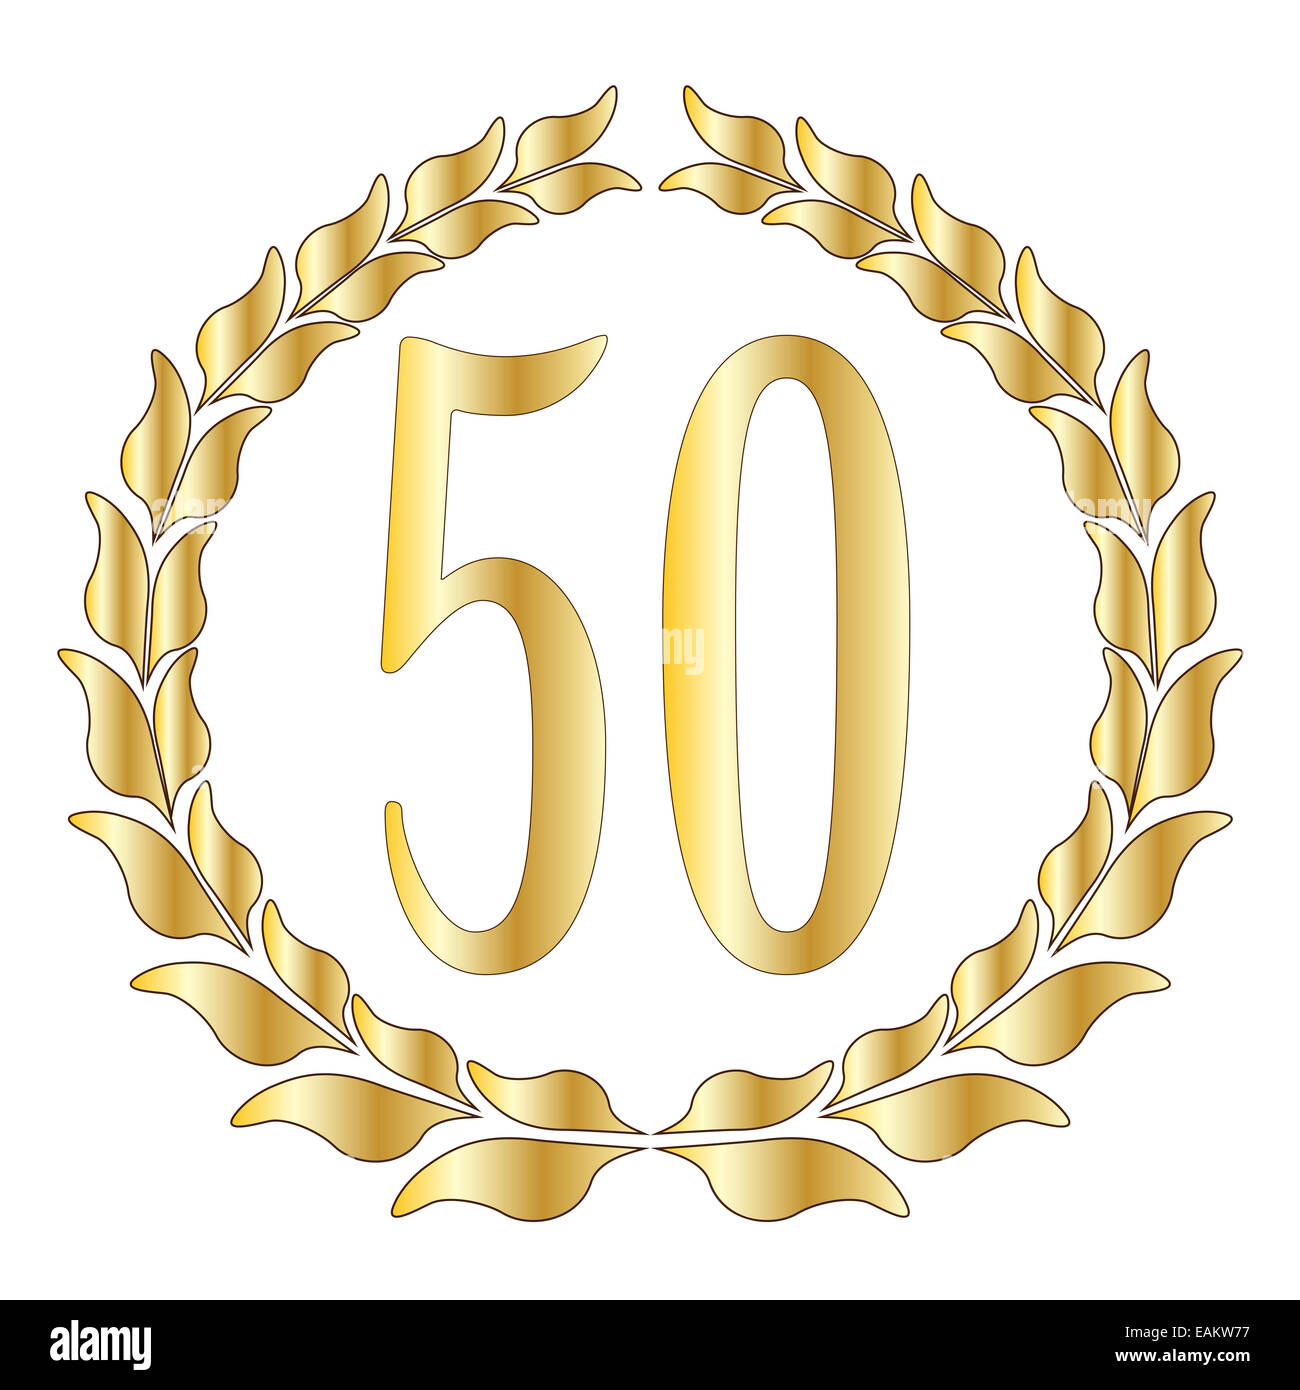 A 50th anniversary symbol over a white background stock photo royalty free image 75424923 alamy - Th anniversary symbol ...